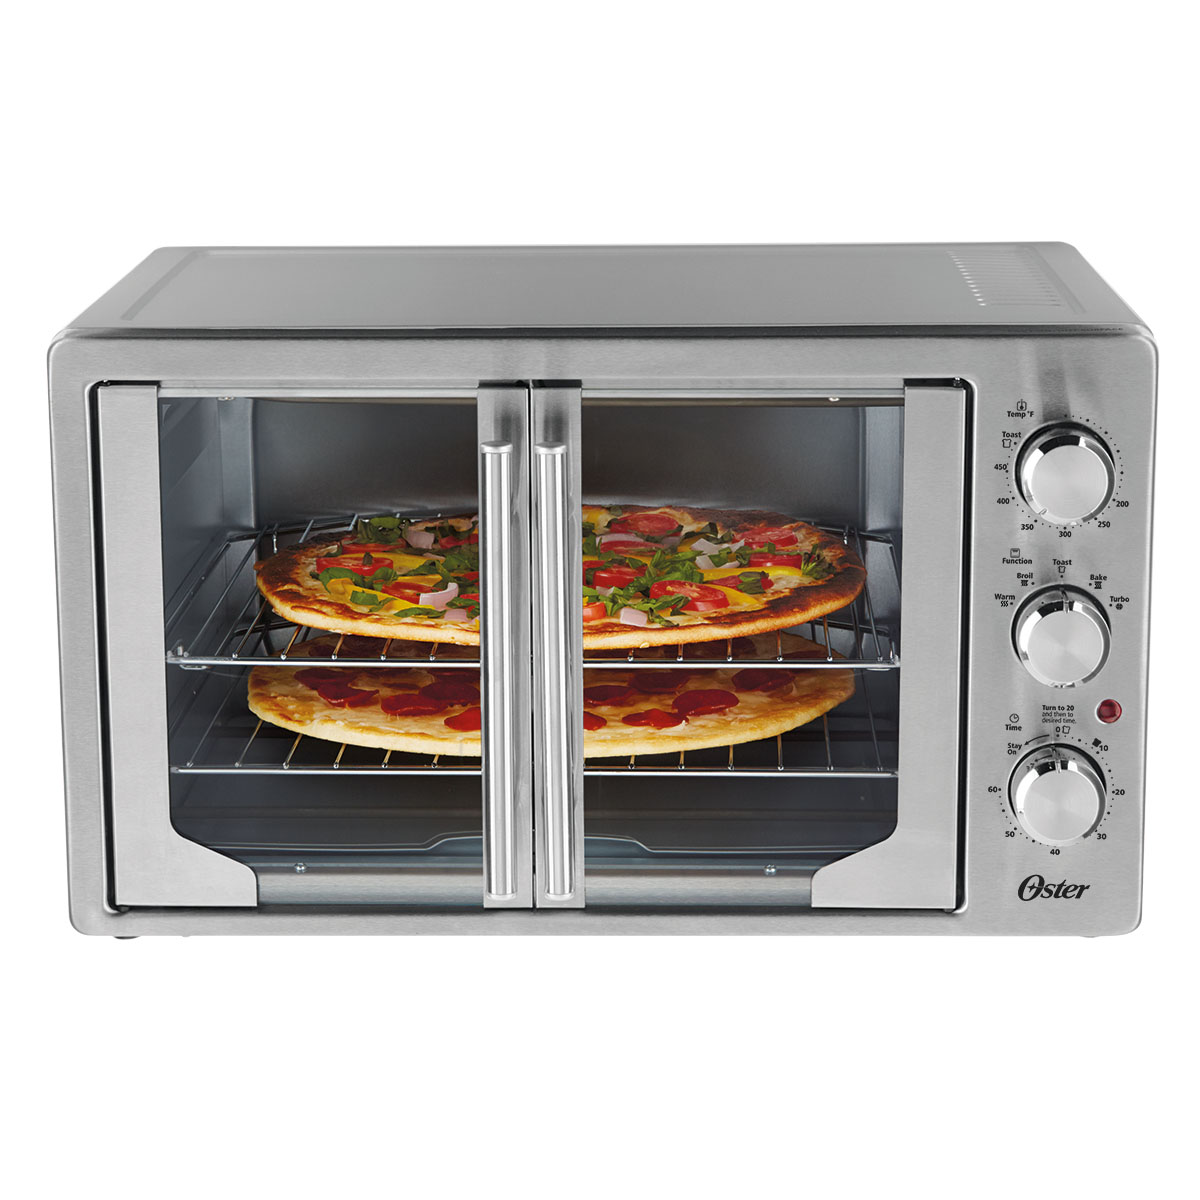 oster toaster oven oster 174 large countertop door oven at oster ca 31394